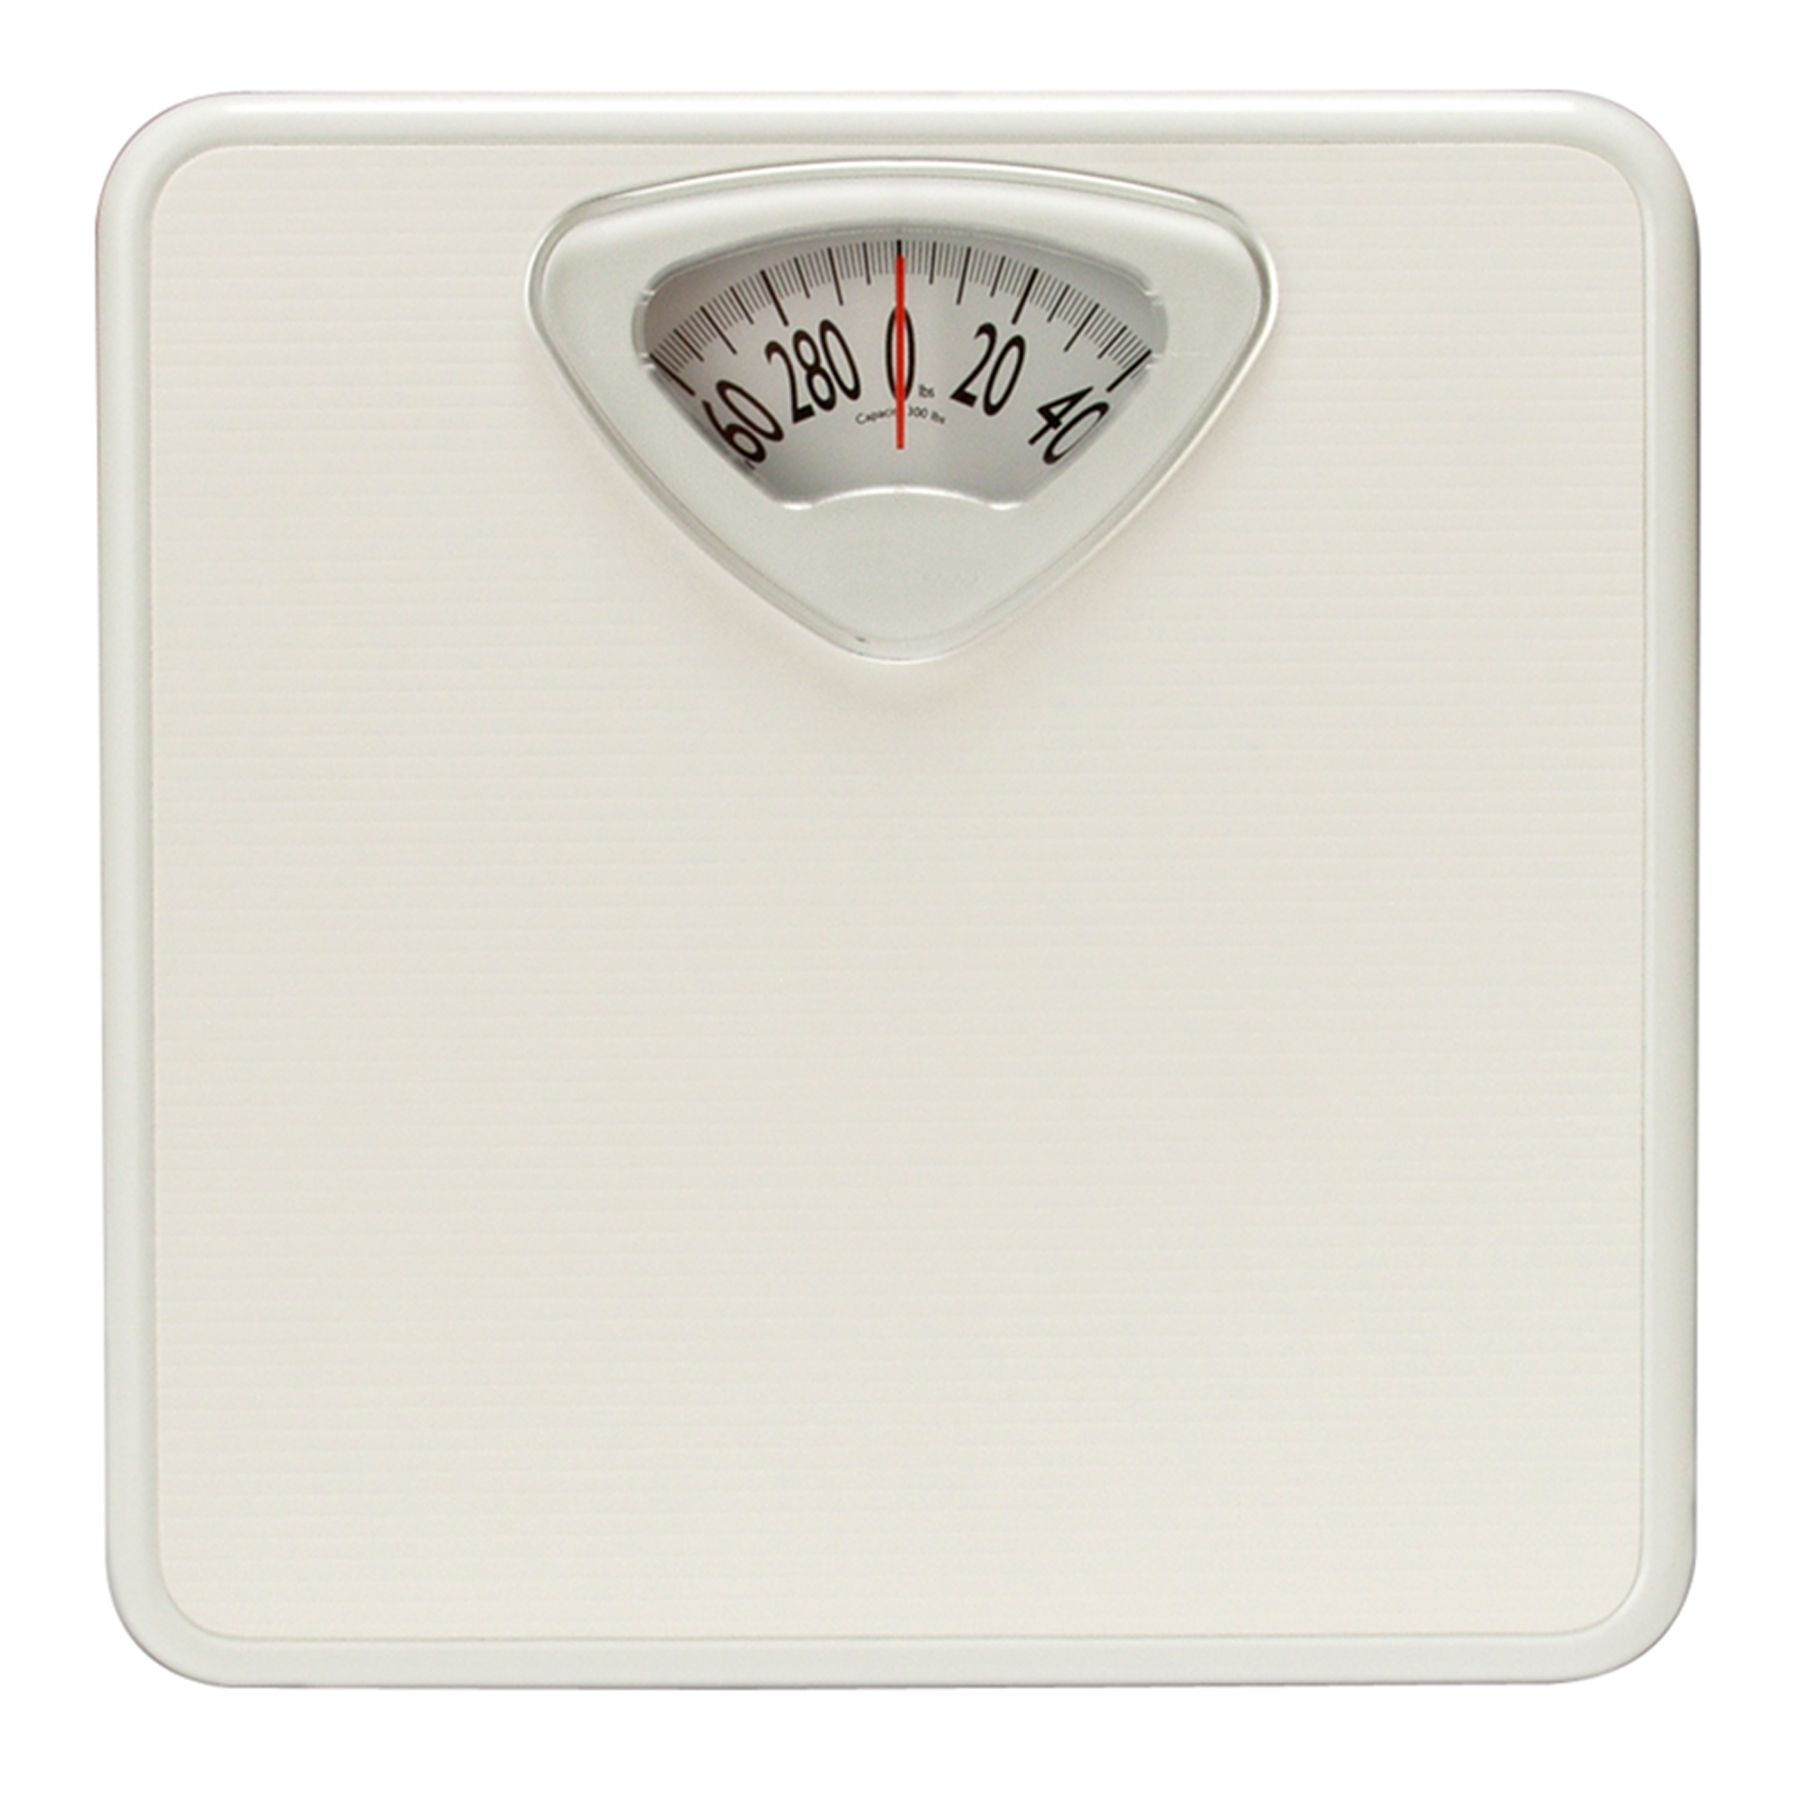 Taylor Scales Analog Bath Scale  White